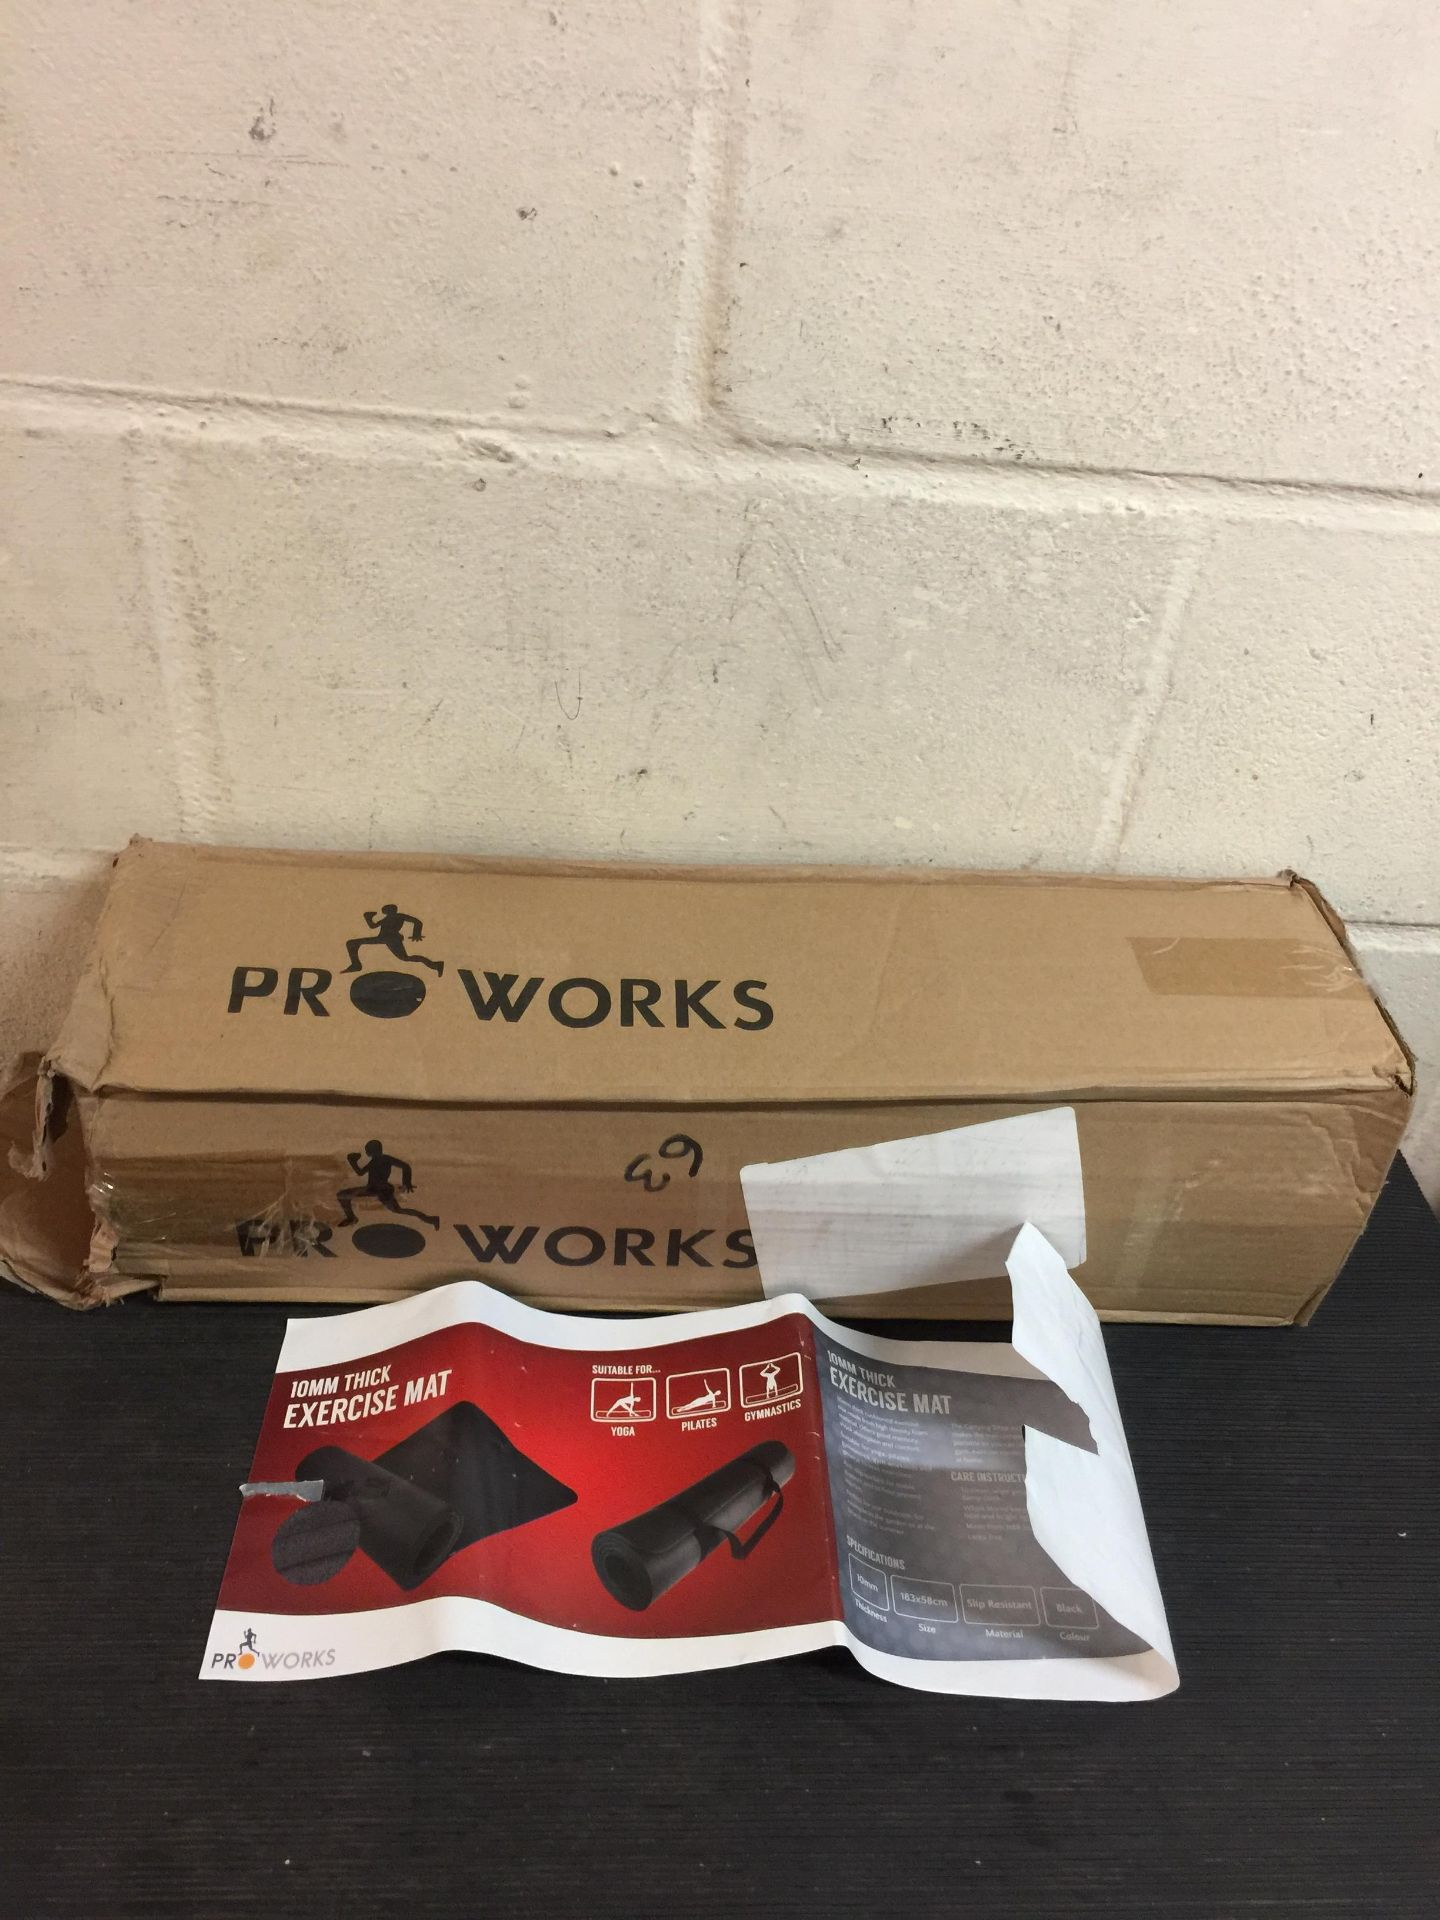 Lot 59 - Pro Works Exercise Mat